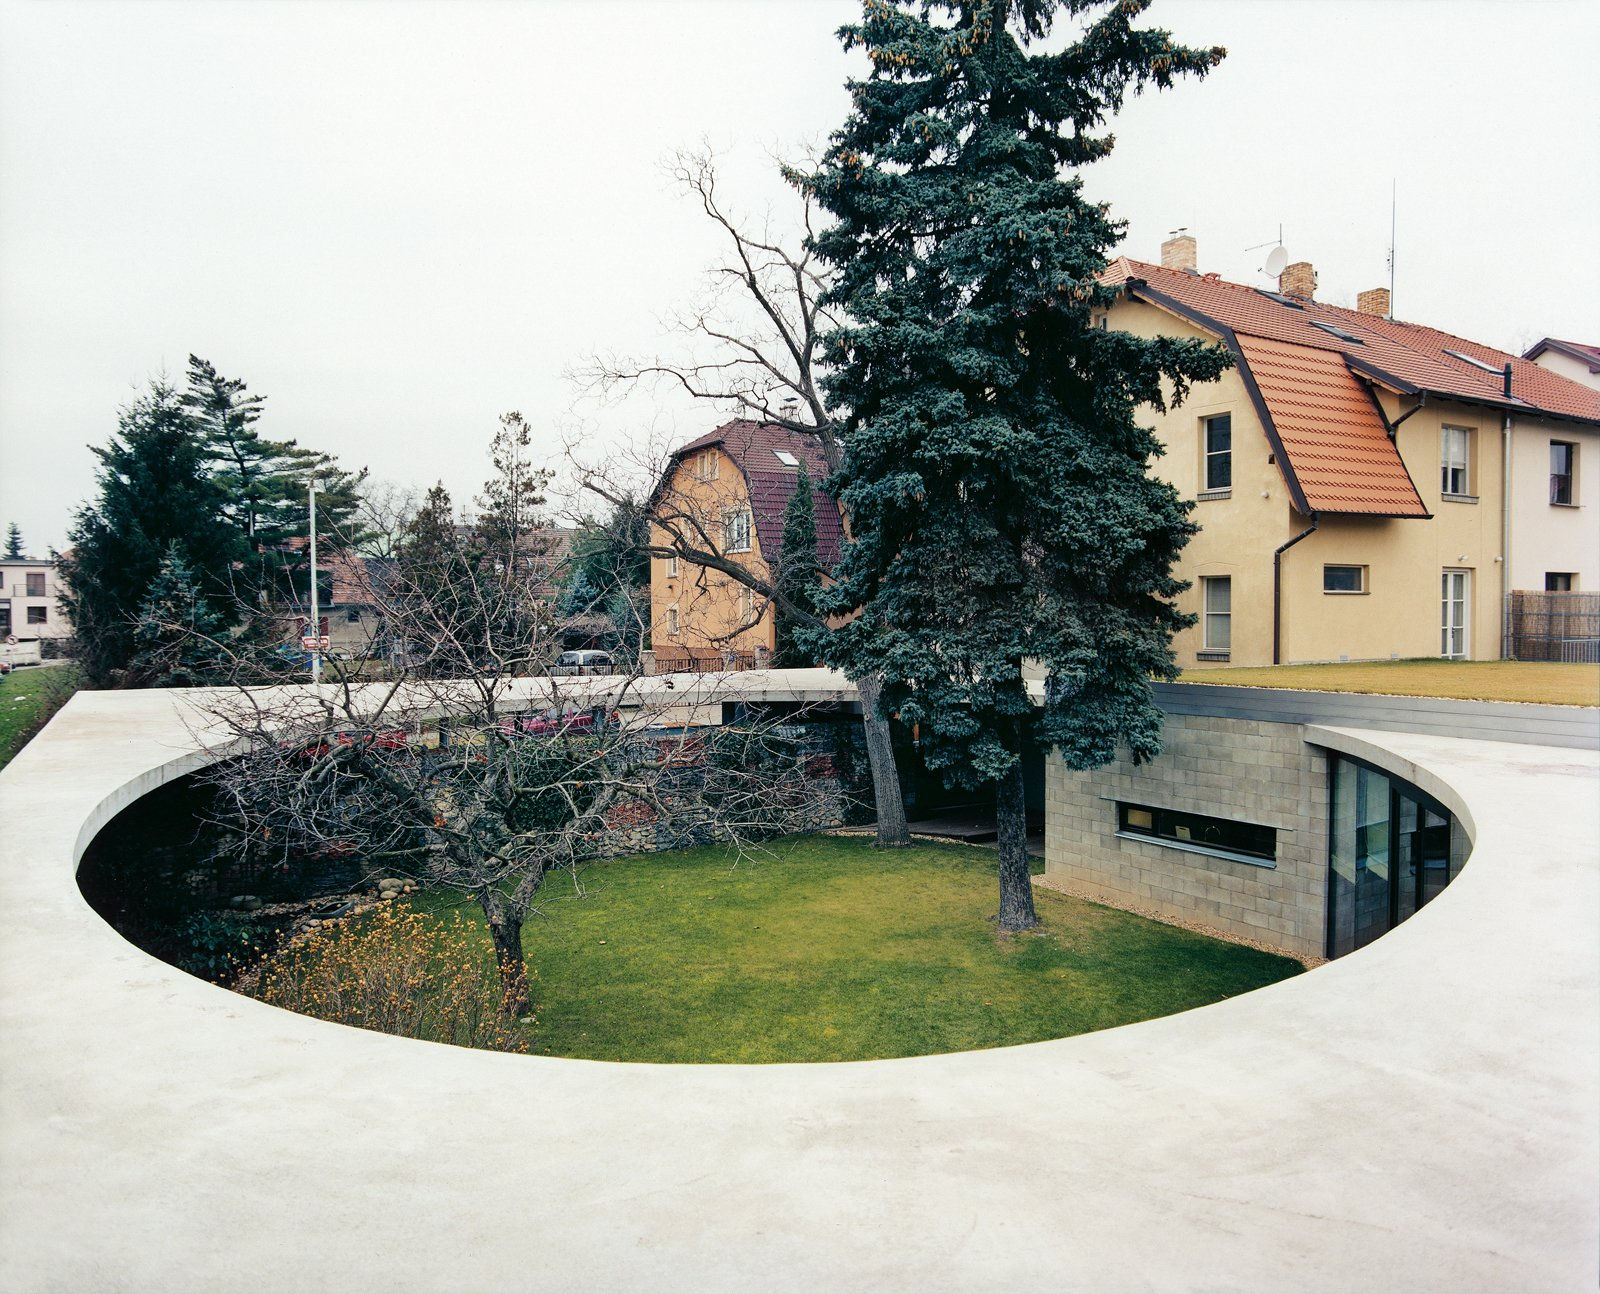 """The tension between old and new is easy to see in Prague, where Art Deco housing butts up uncomfortably with utilitarian tower blocks left behind after the Soviet invasion of 1968. Even the homeowners' attitude reflects this. """"I'm used to that antique style and always thought I would live like that,"""" Johana Ru˚žičková explains. """"I know that conflict.""""  Imaginative Round Homes by Robert Gordon-Fogelson from EggO Centric"""